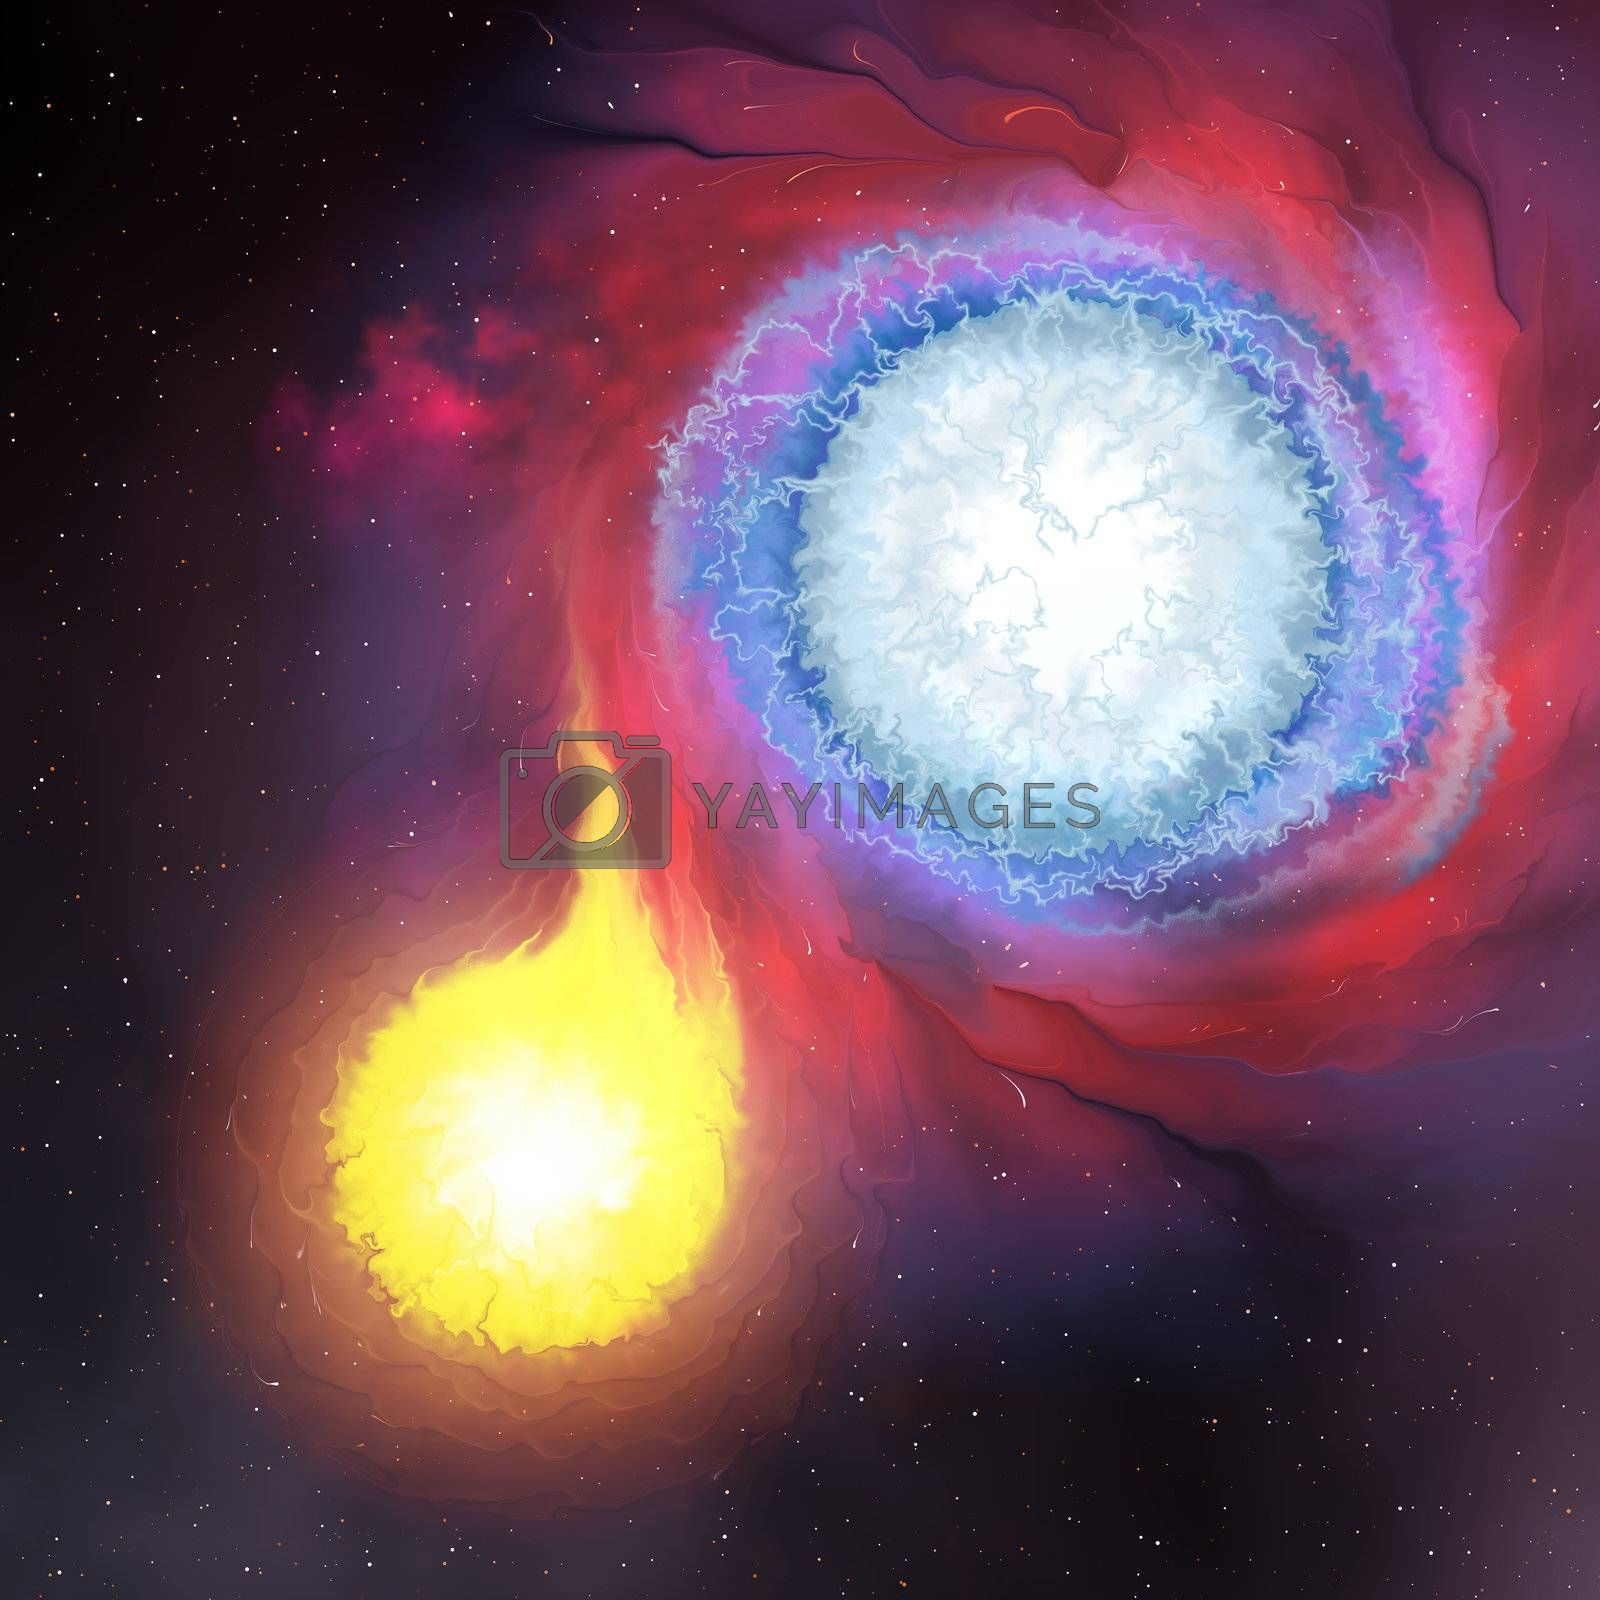 A binary star system is composed of two stars orbiting a center mass. Here the larger blue star is absorbing the other smaller secondary star.